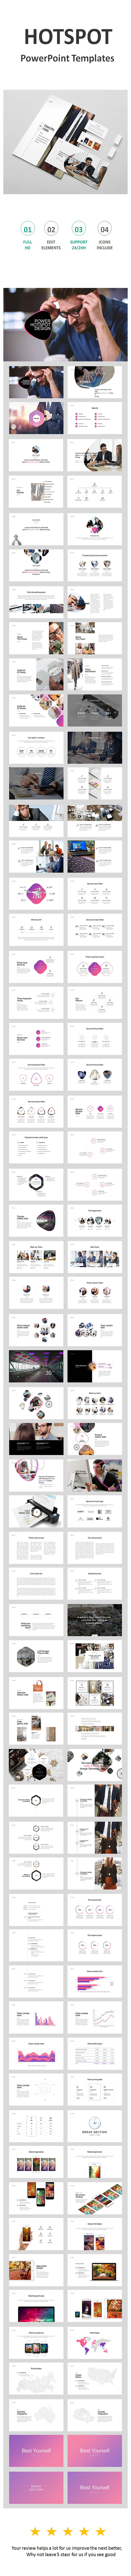 Hotspot- PowerPoint Templates | Business